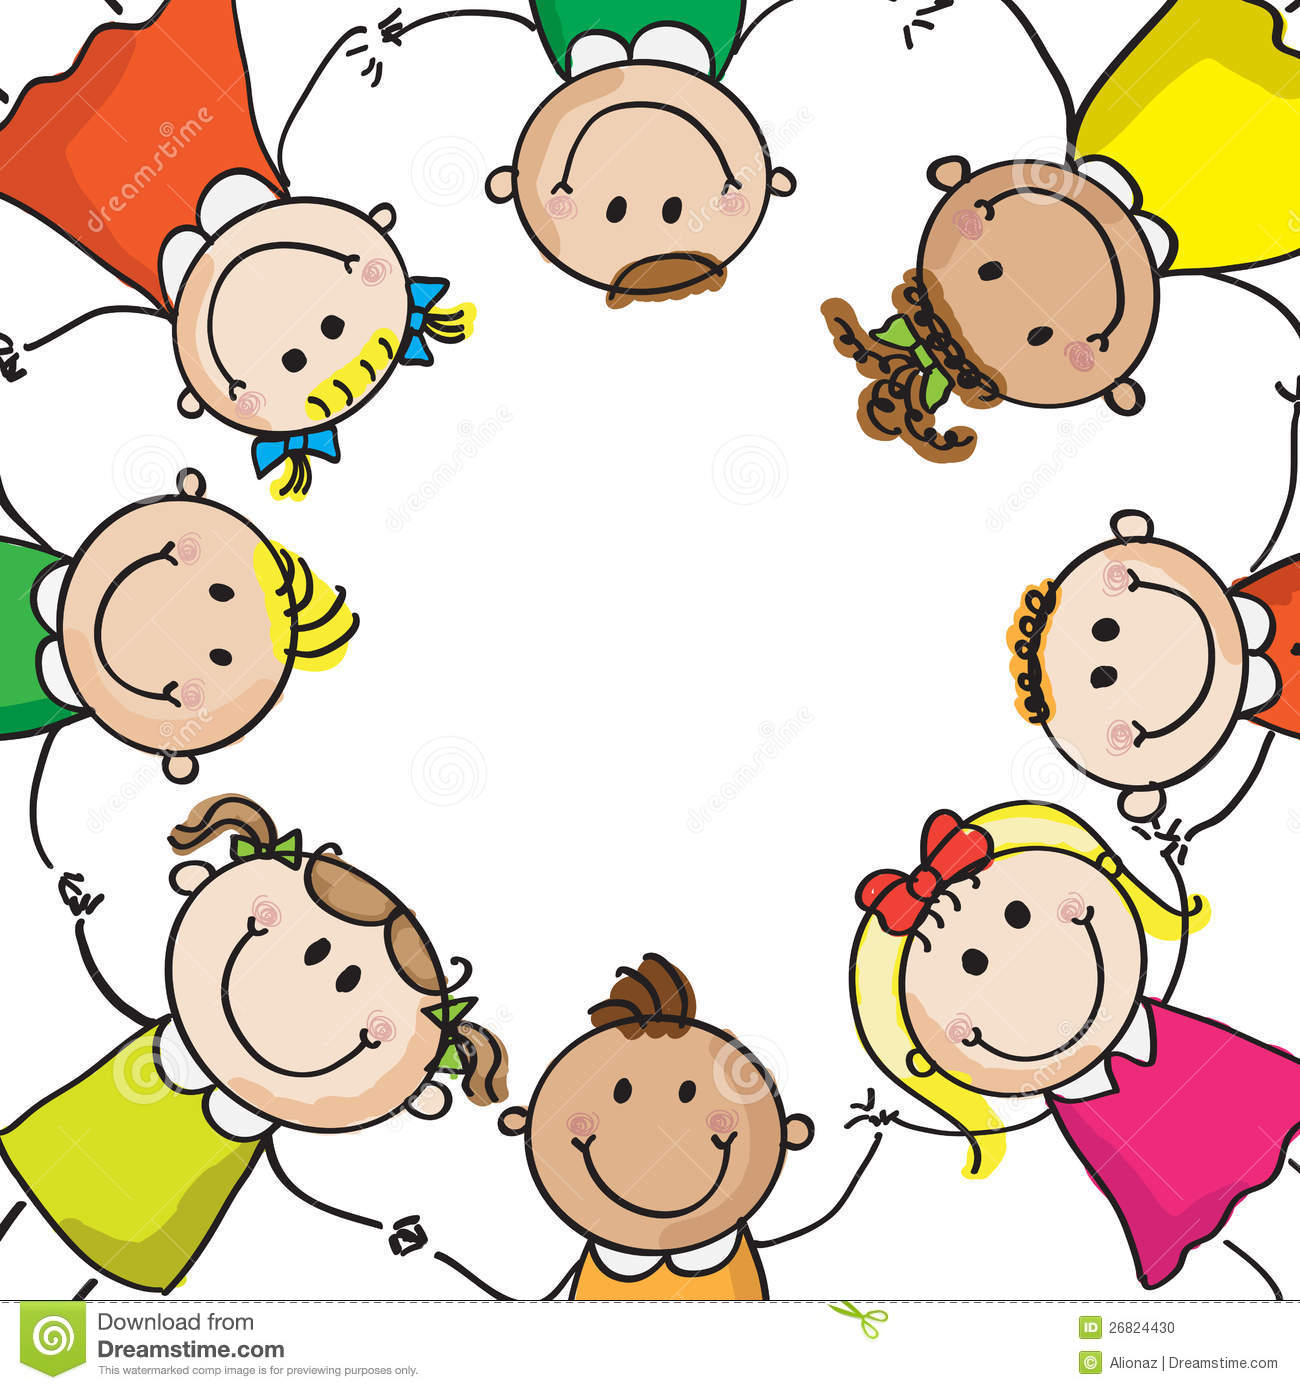 Room the thinking classroom. Friendship clipart morning meeting